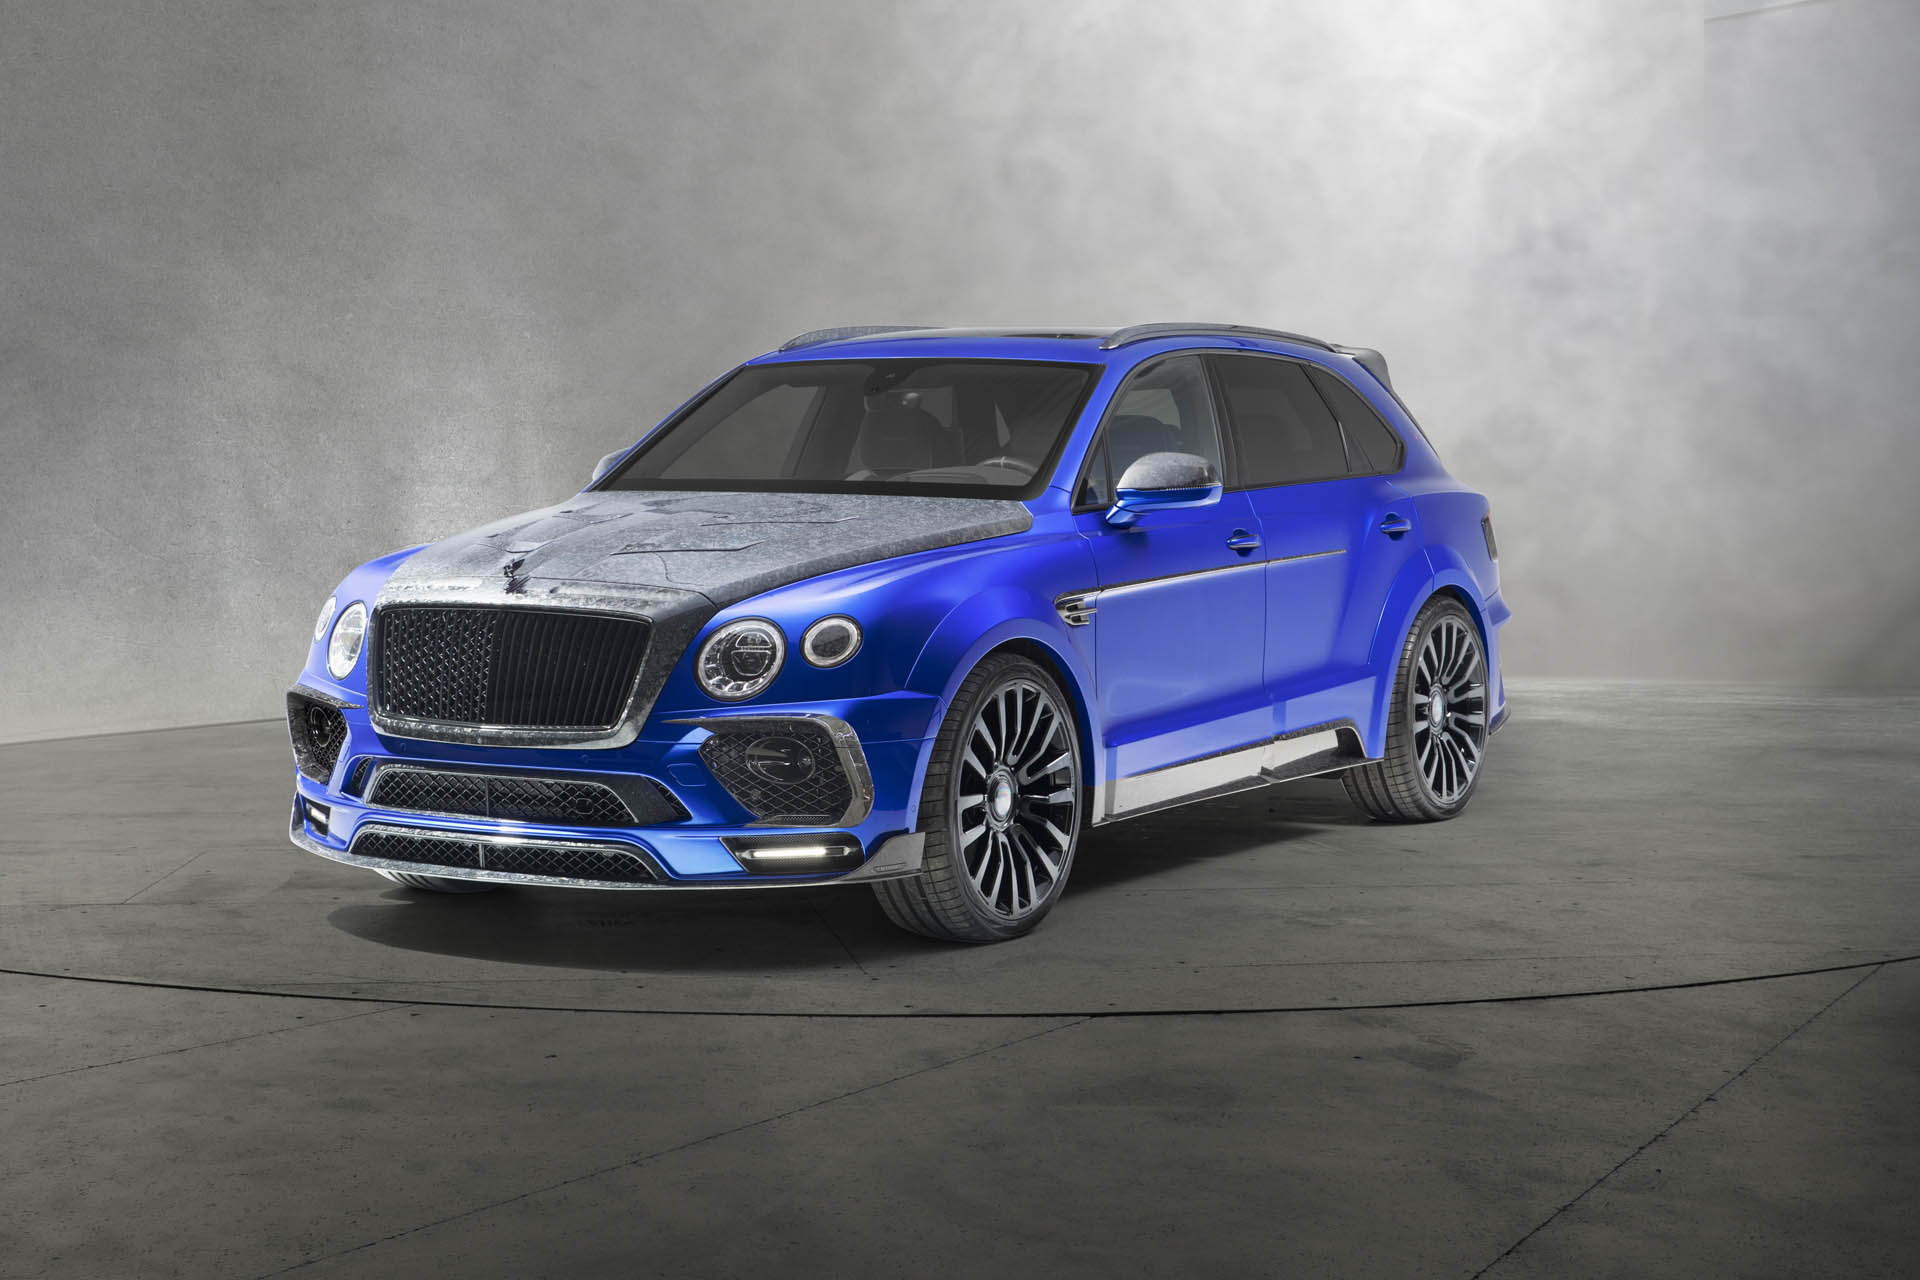 The car customization atelier Mansory has come to the Geneva Motor Show 2018 with a unique take on the Bentley Bentayga crossover SUV, named Bleurion Edition